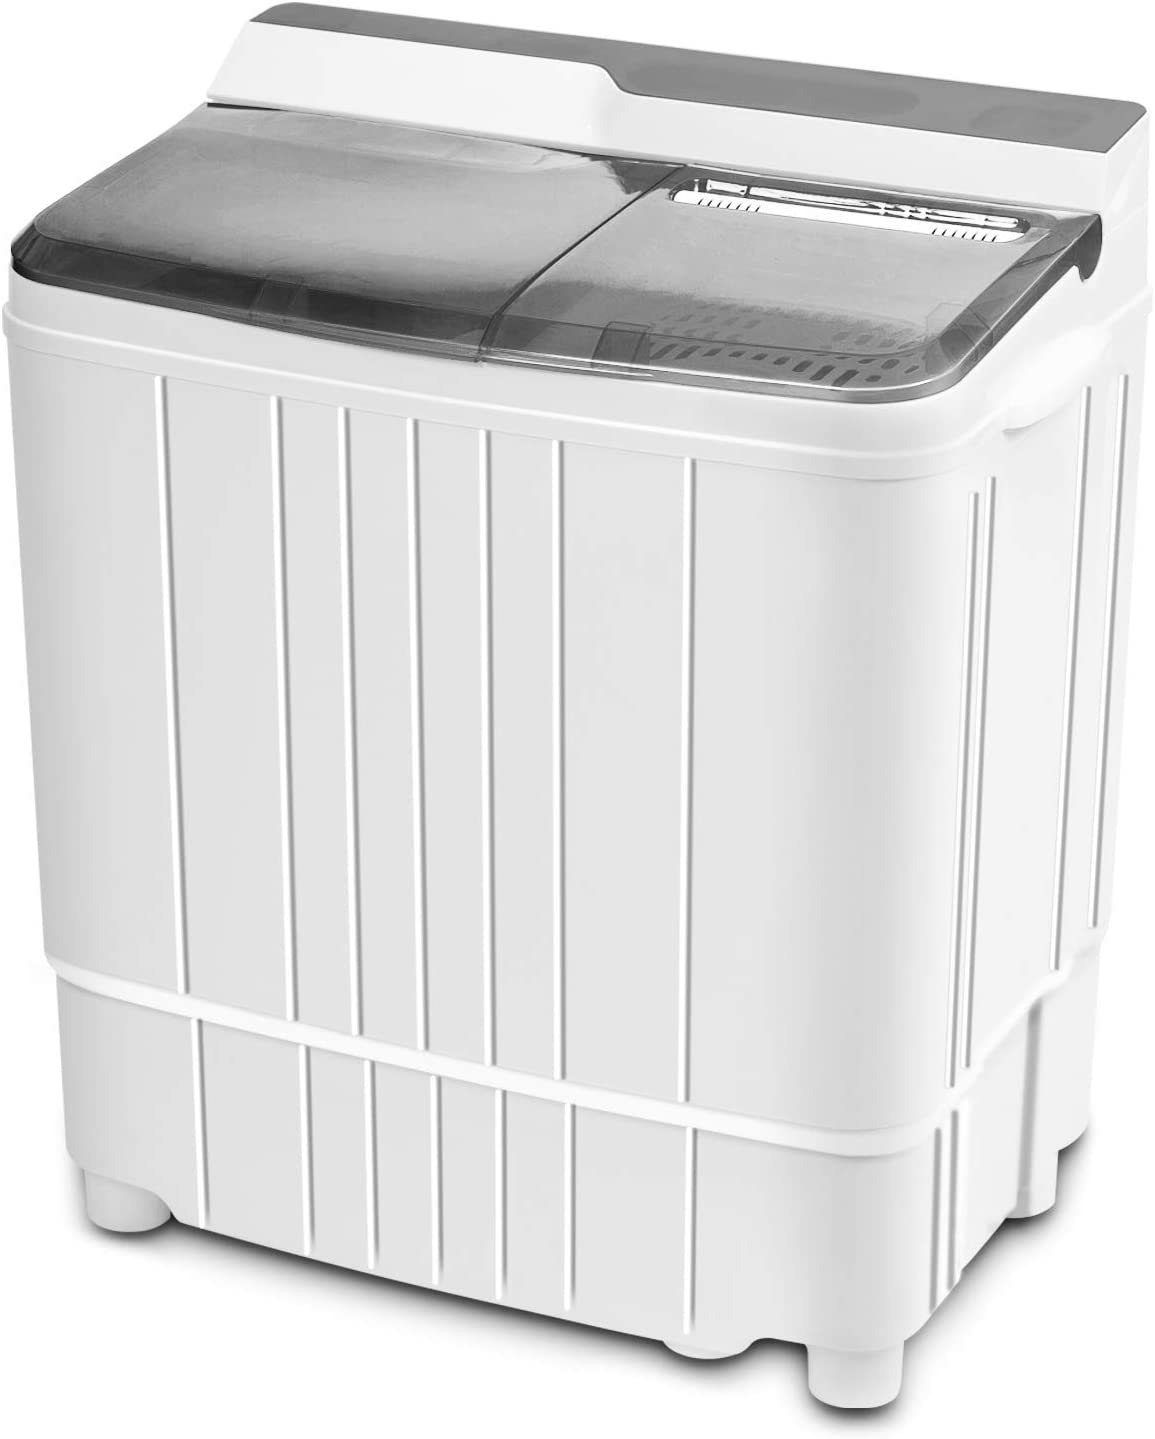 Portable Mini Washing Machine, INVIE Compact 17.6lbs Twin Tub Washer (11lbs) and Spin Dryer Combo (6.6lbs), Timer Control with Soaking Function Ideal for Dorms, Apartments, RVs, Camping etc, Gray